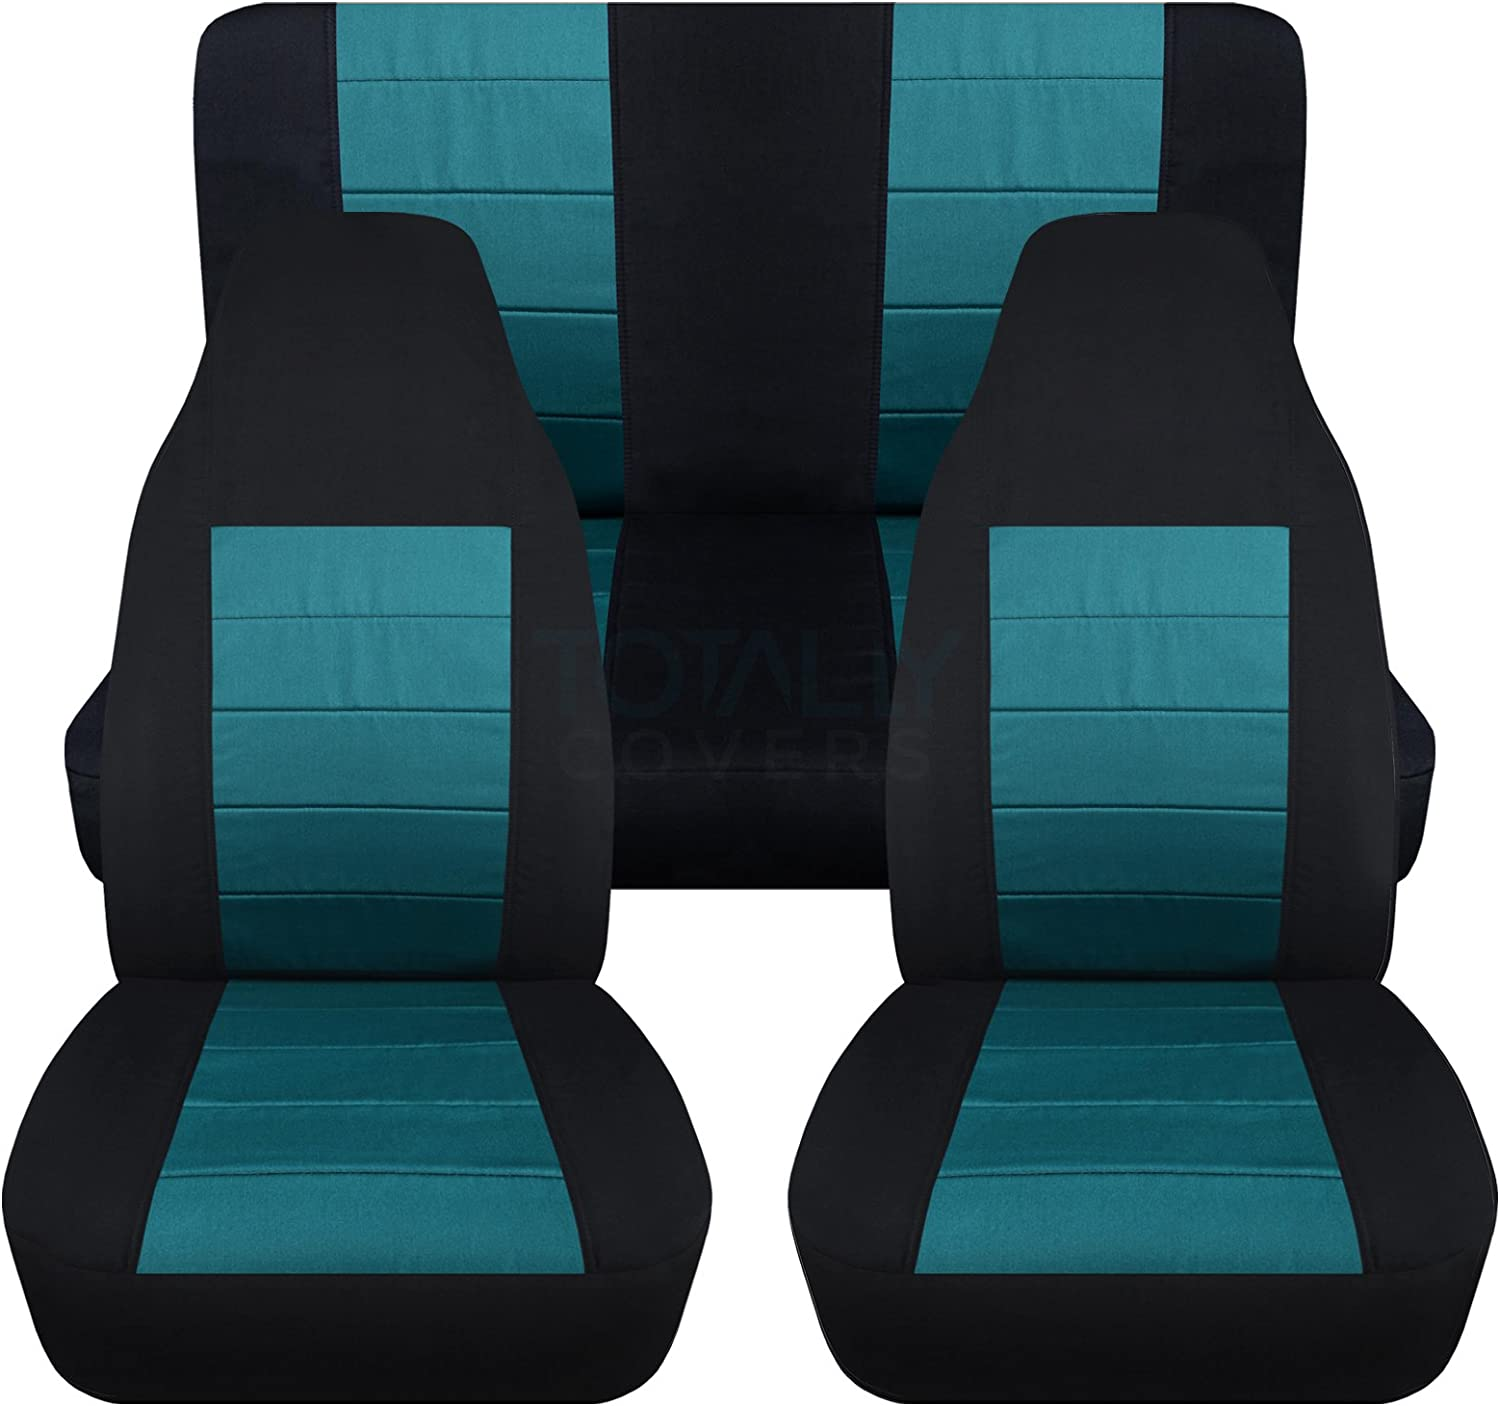 Totally Covers Compatible with 1987-1995 Jeep Wrangler YJ Seat Covers: Black & Teal - Full Set: Front & Rear (23 Colors) 2-Door Complete Back Bench